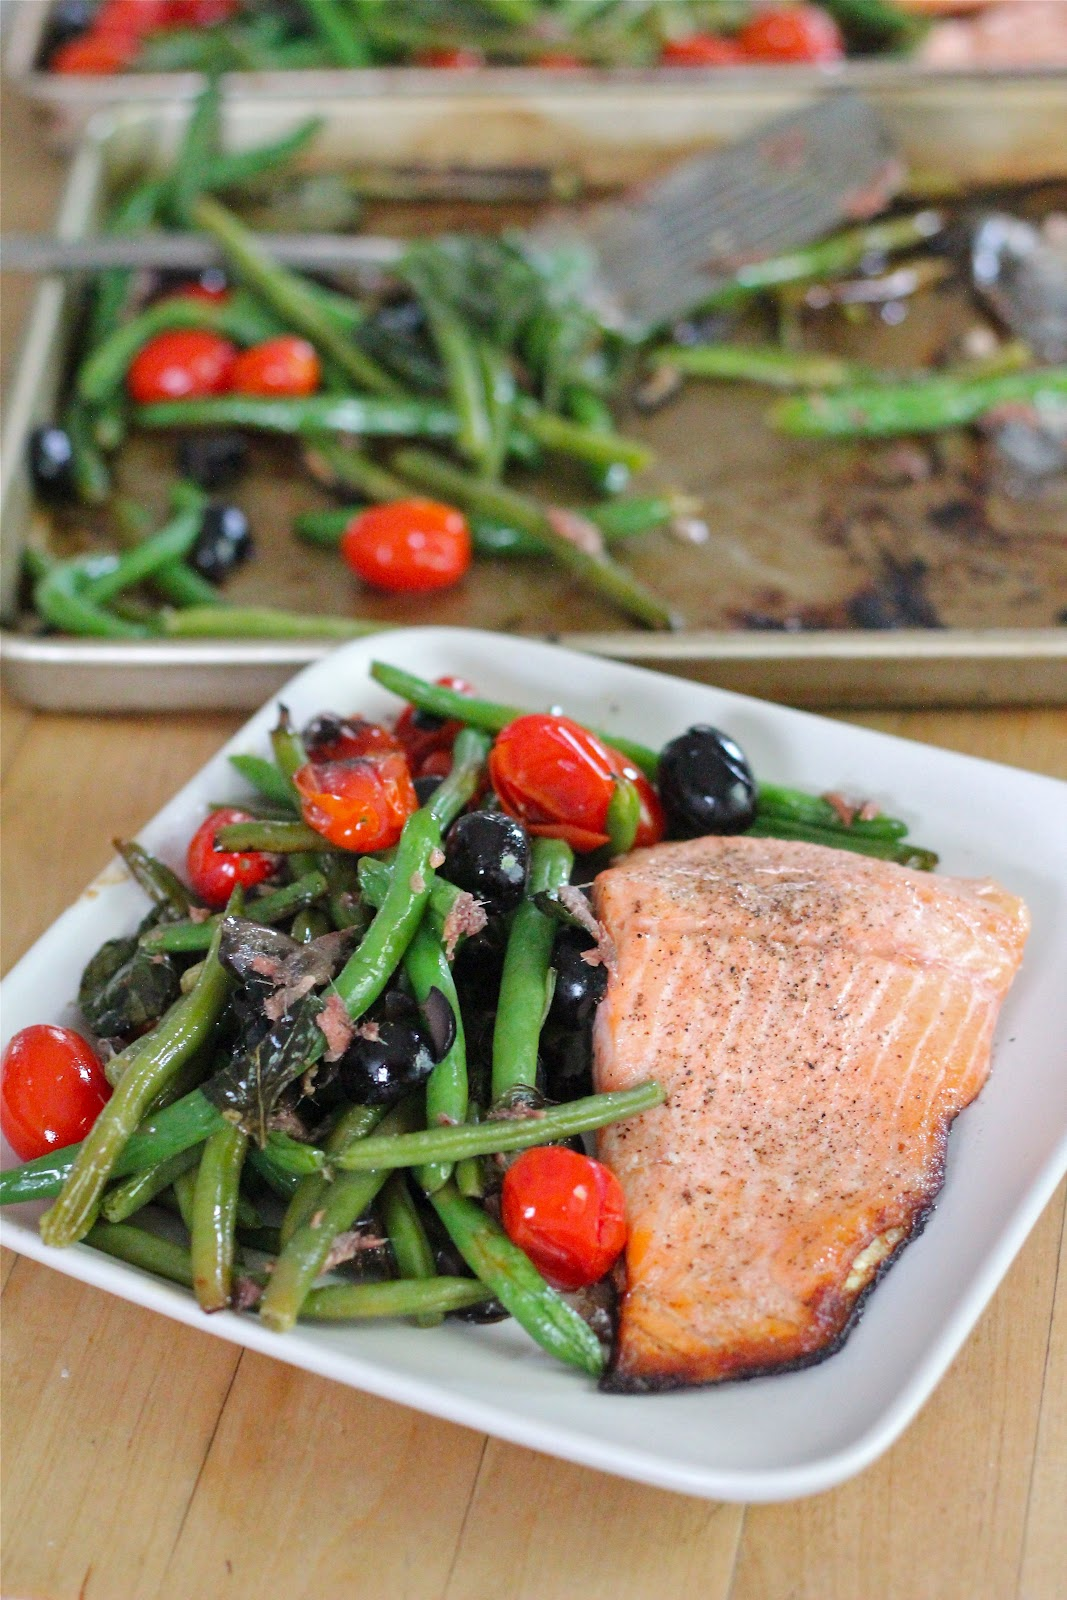 Jamie Oliver S Tray Baked Salmon With Veggies Eat Good 4 Life